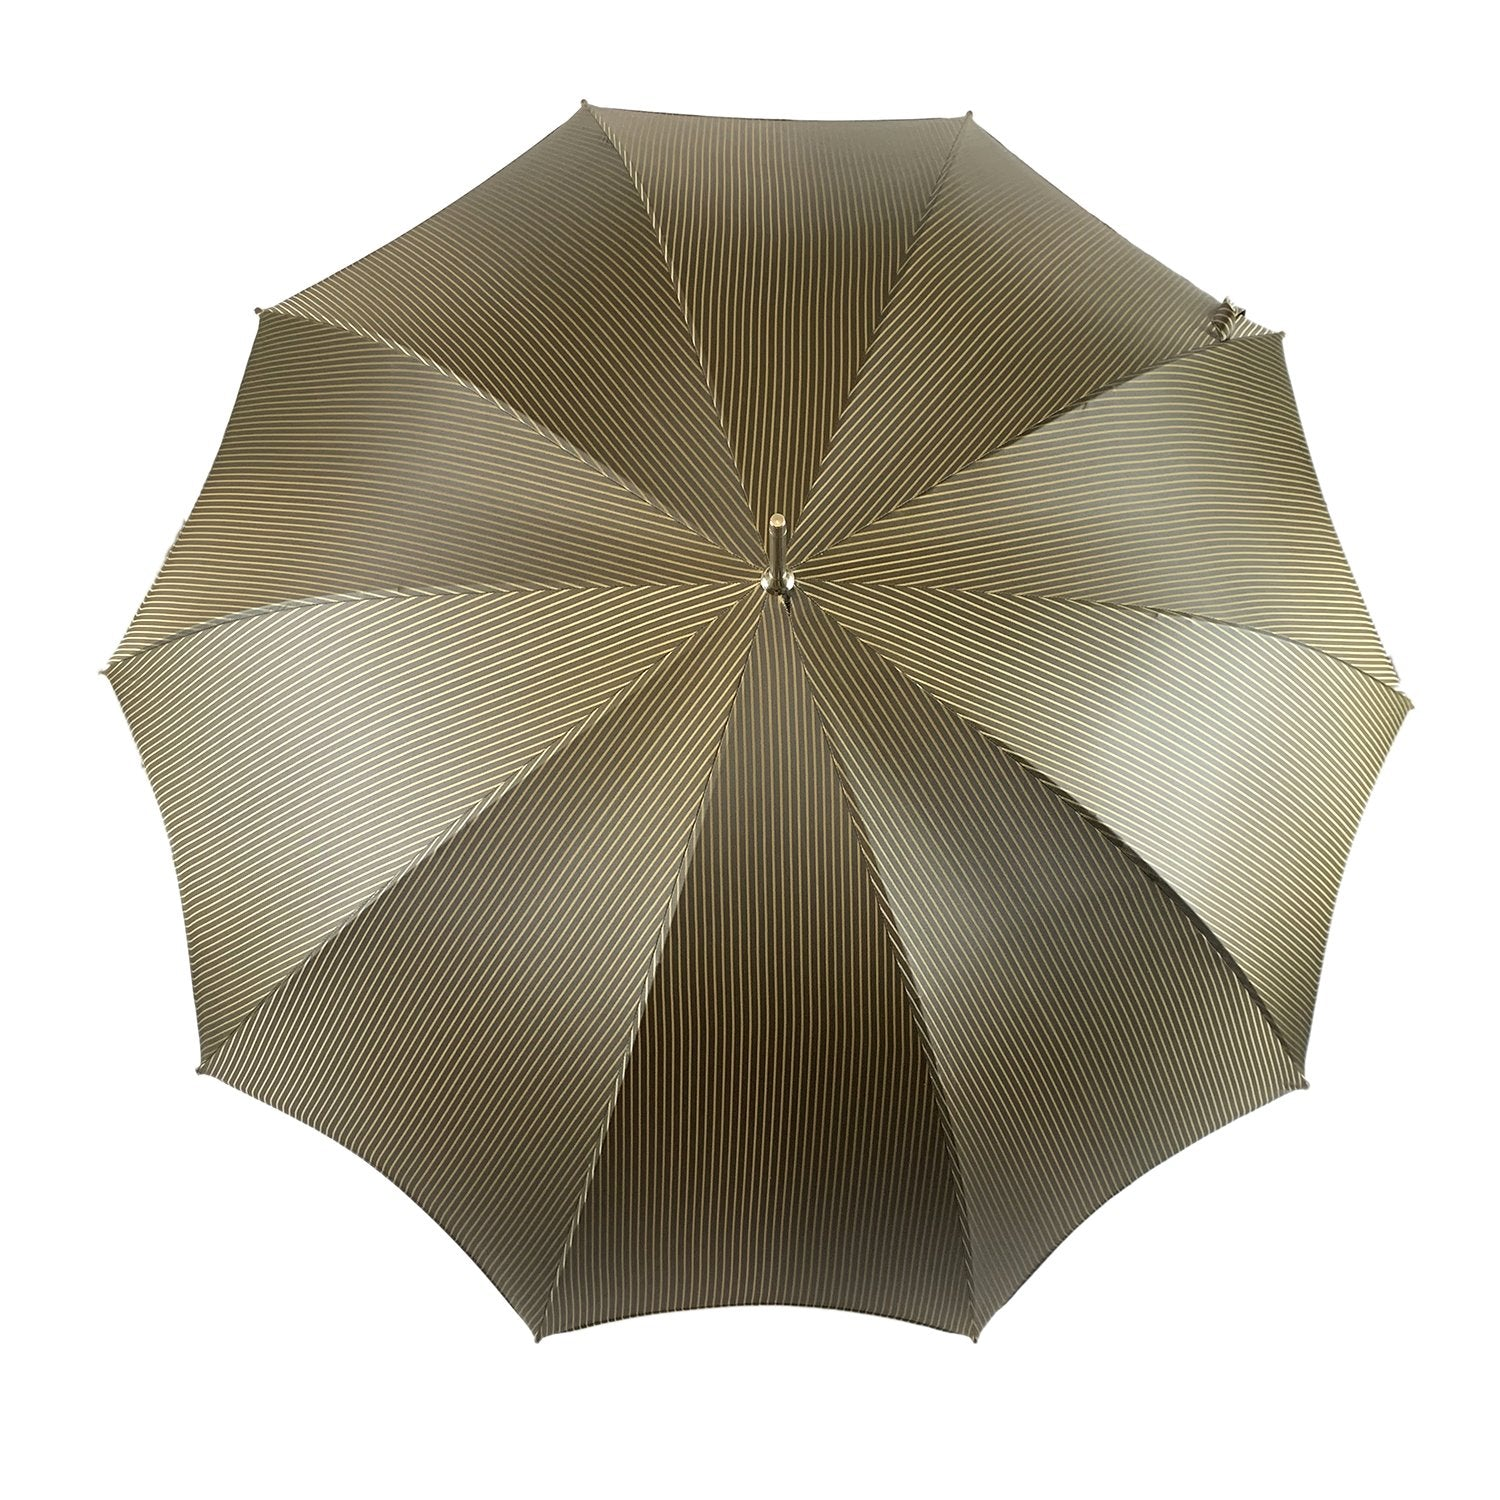 Gold&Brown striped umbrella - IL MARCHESATO LUXURY UMBRELLAS, CANES AND SHOEHORNS